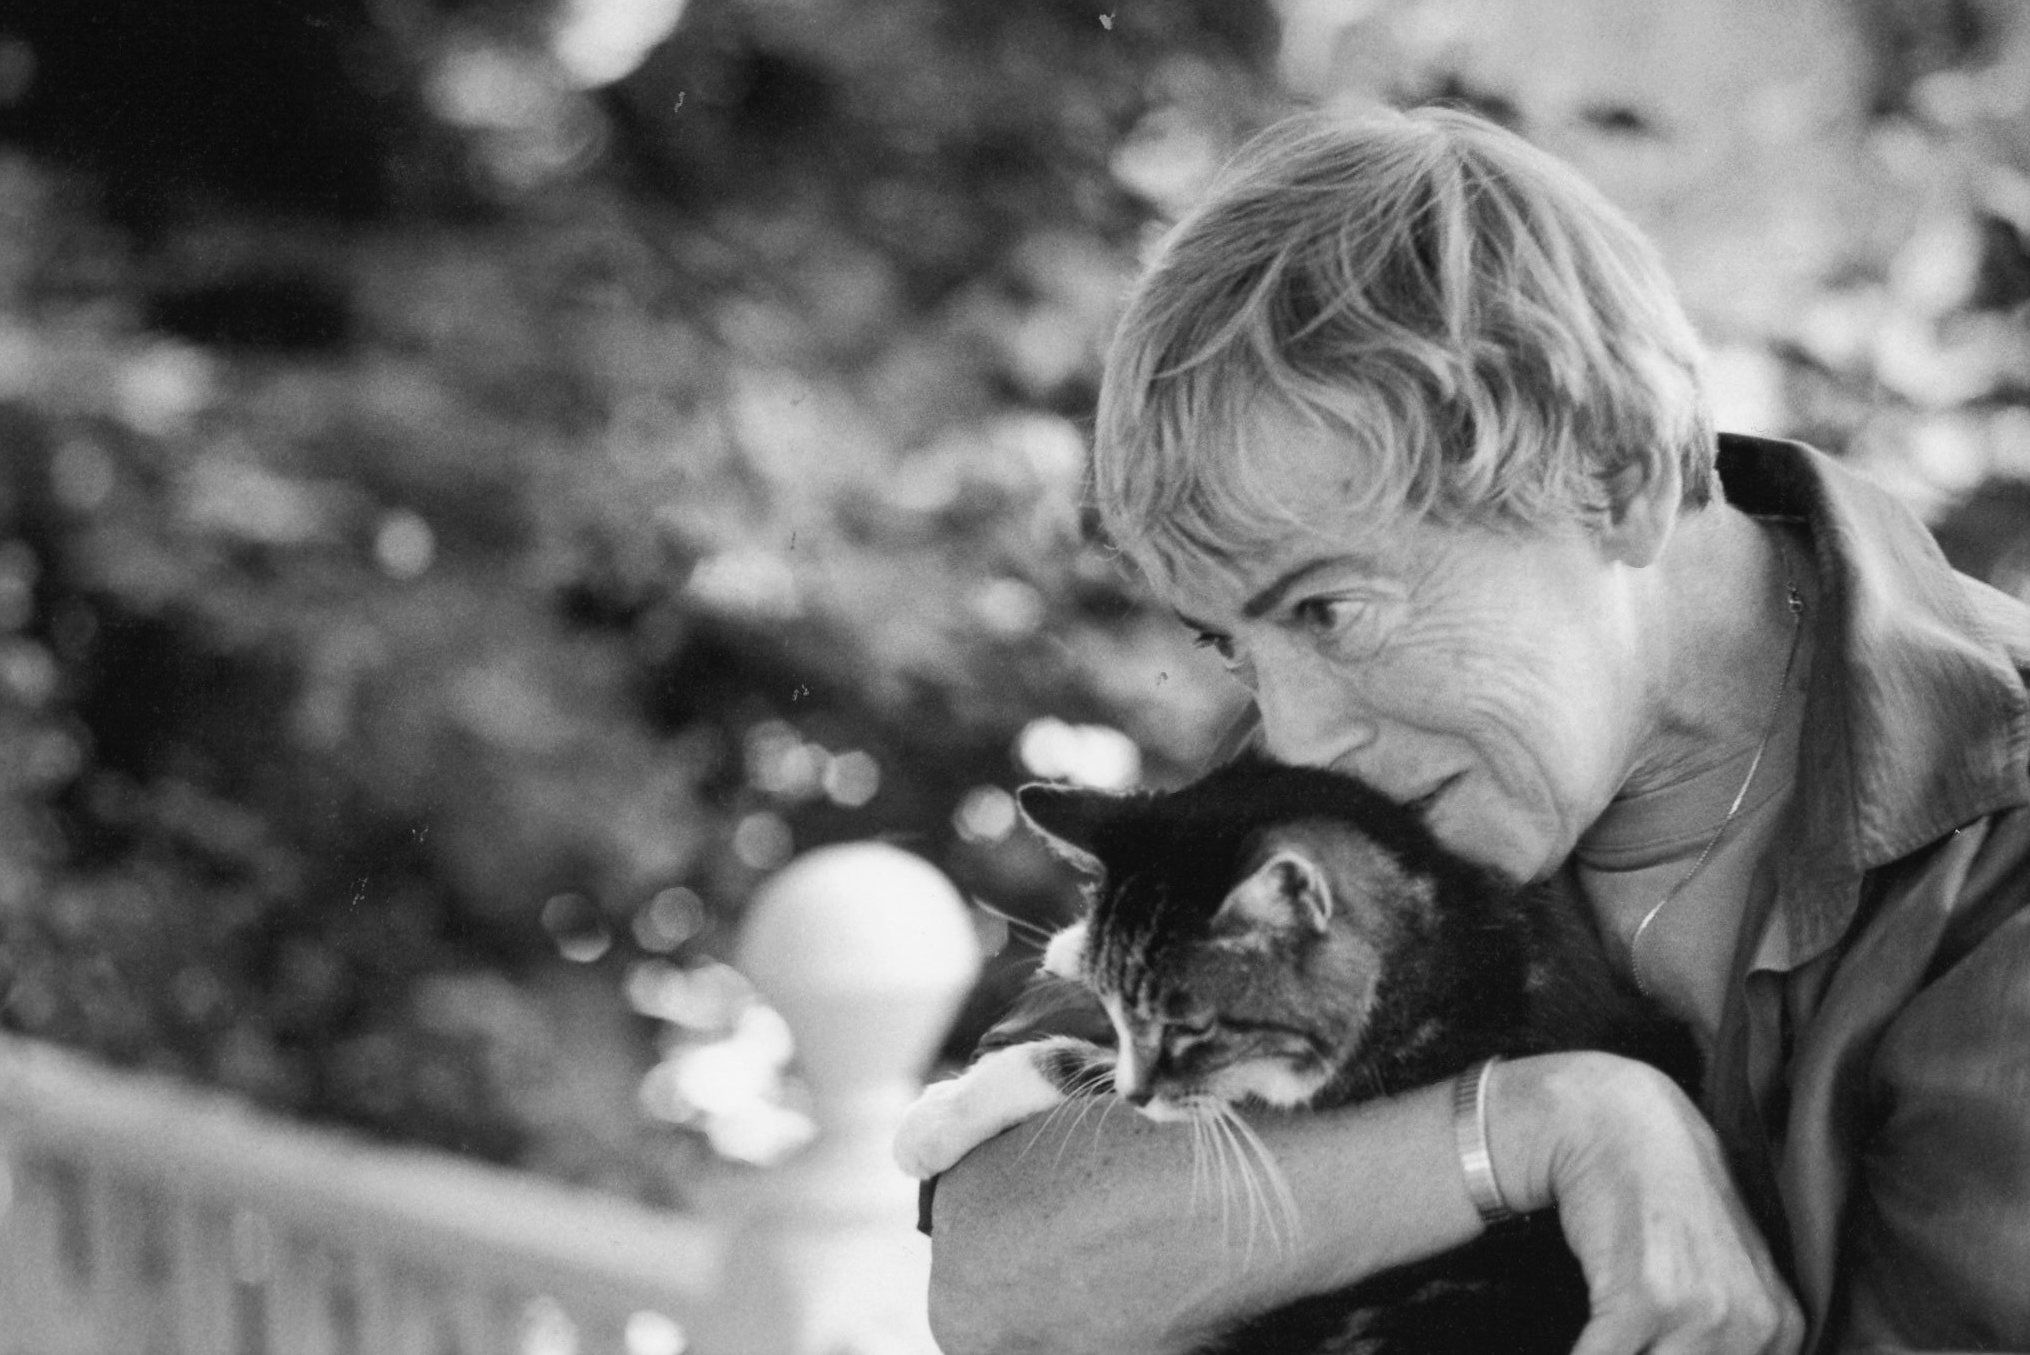 ursula k le guin WITH CAT